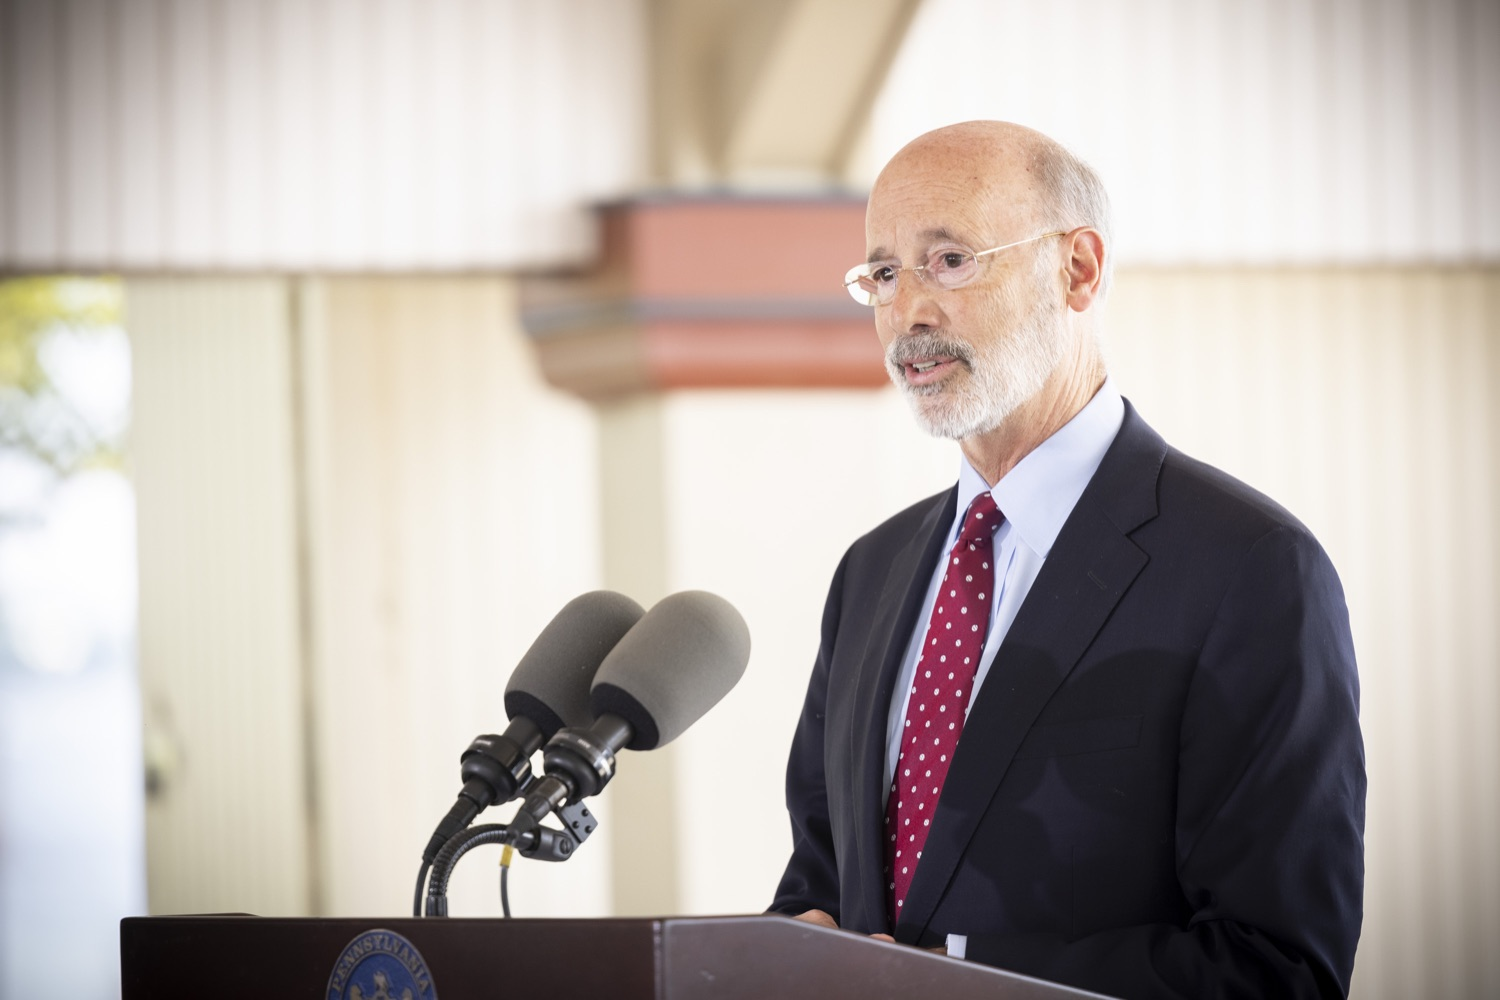 """<a href=""""https://filesource.wostreaming.net/commonwealthofpa/photo/18932_gov_chirp_dz_007.jpg"""" target=""""_blank"""">⇣Download Photo<br></a>Pennsylvania Governor Tom Wolf speaking with the press.  Governor Tom Wolf today joined the Pennsylvania Department of Community and Economic Development, Bucks County Commissioners, Bristol Borough Mayor Joseph Saxton, local lawmakers, Bucks County Economic Development Corporation, Visit Bucks County, the Bucks County Redevelopment Authority, and the owners of Itri Wood Fired to highlight the $7 million in grant funding provided to Bucks County restaurants through the COVID-19 Hospitality Industry Recovery Program(CHIRP).  JULY 16, 2021 - BRISTOL, PA"""